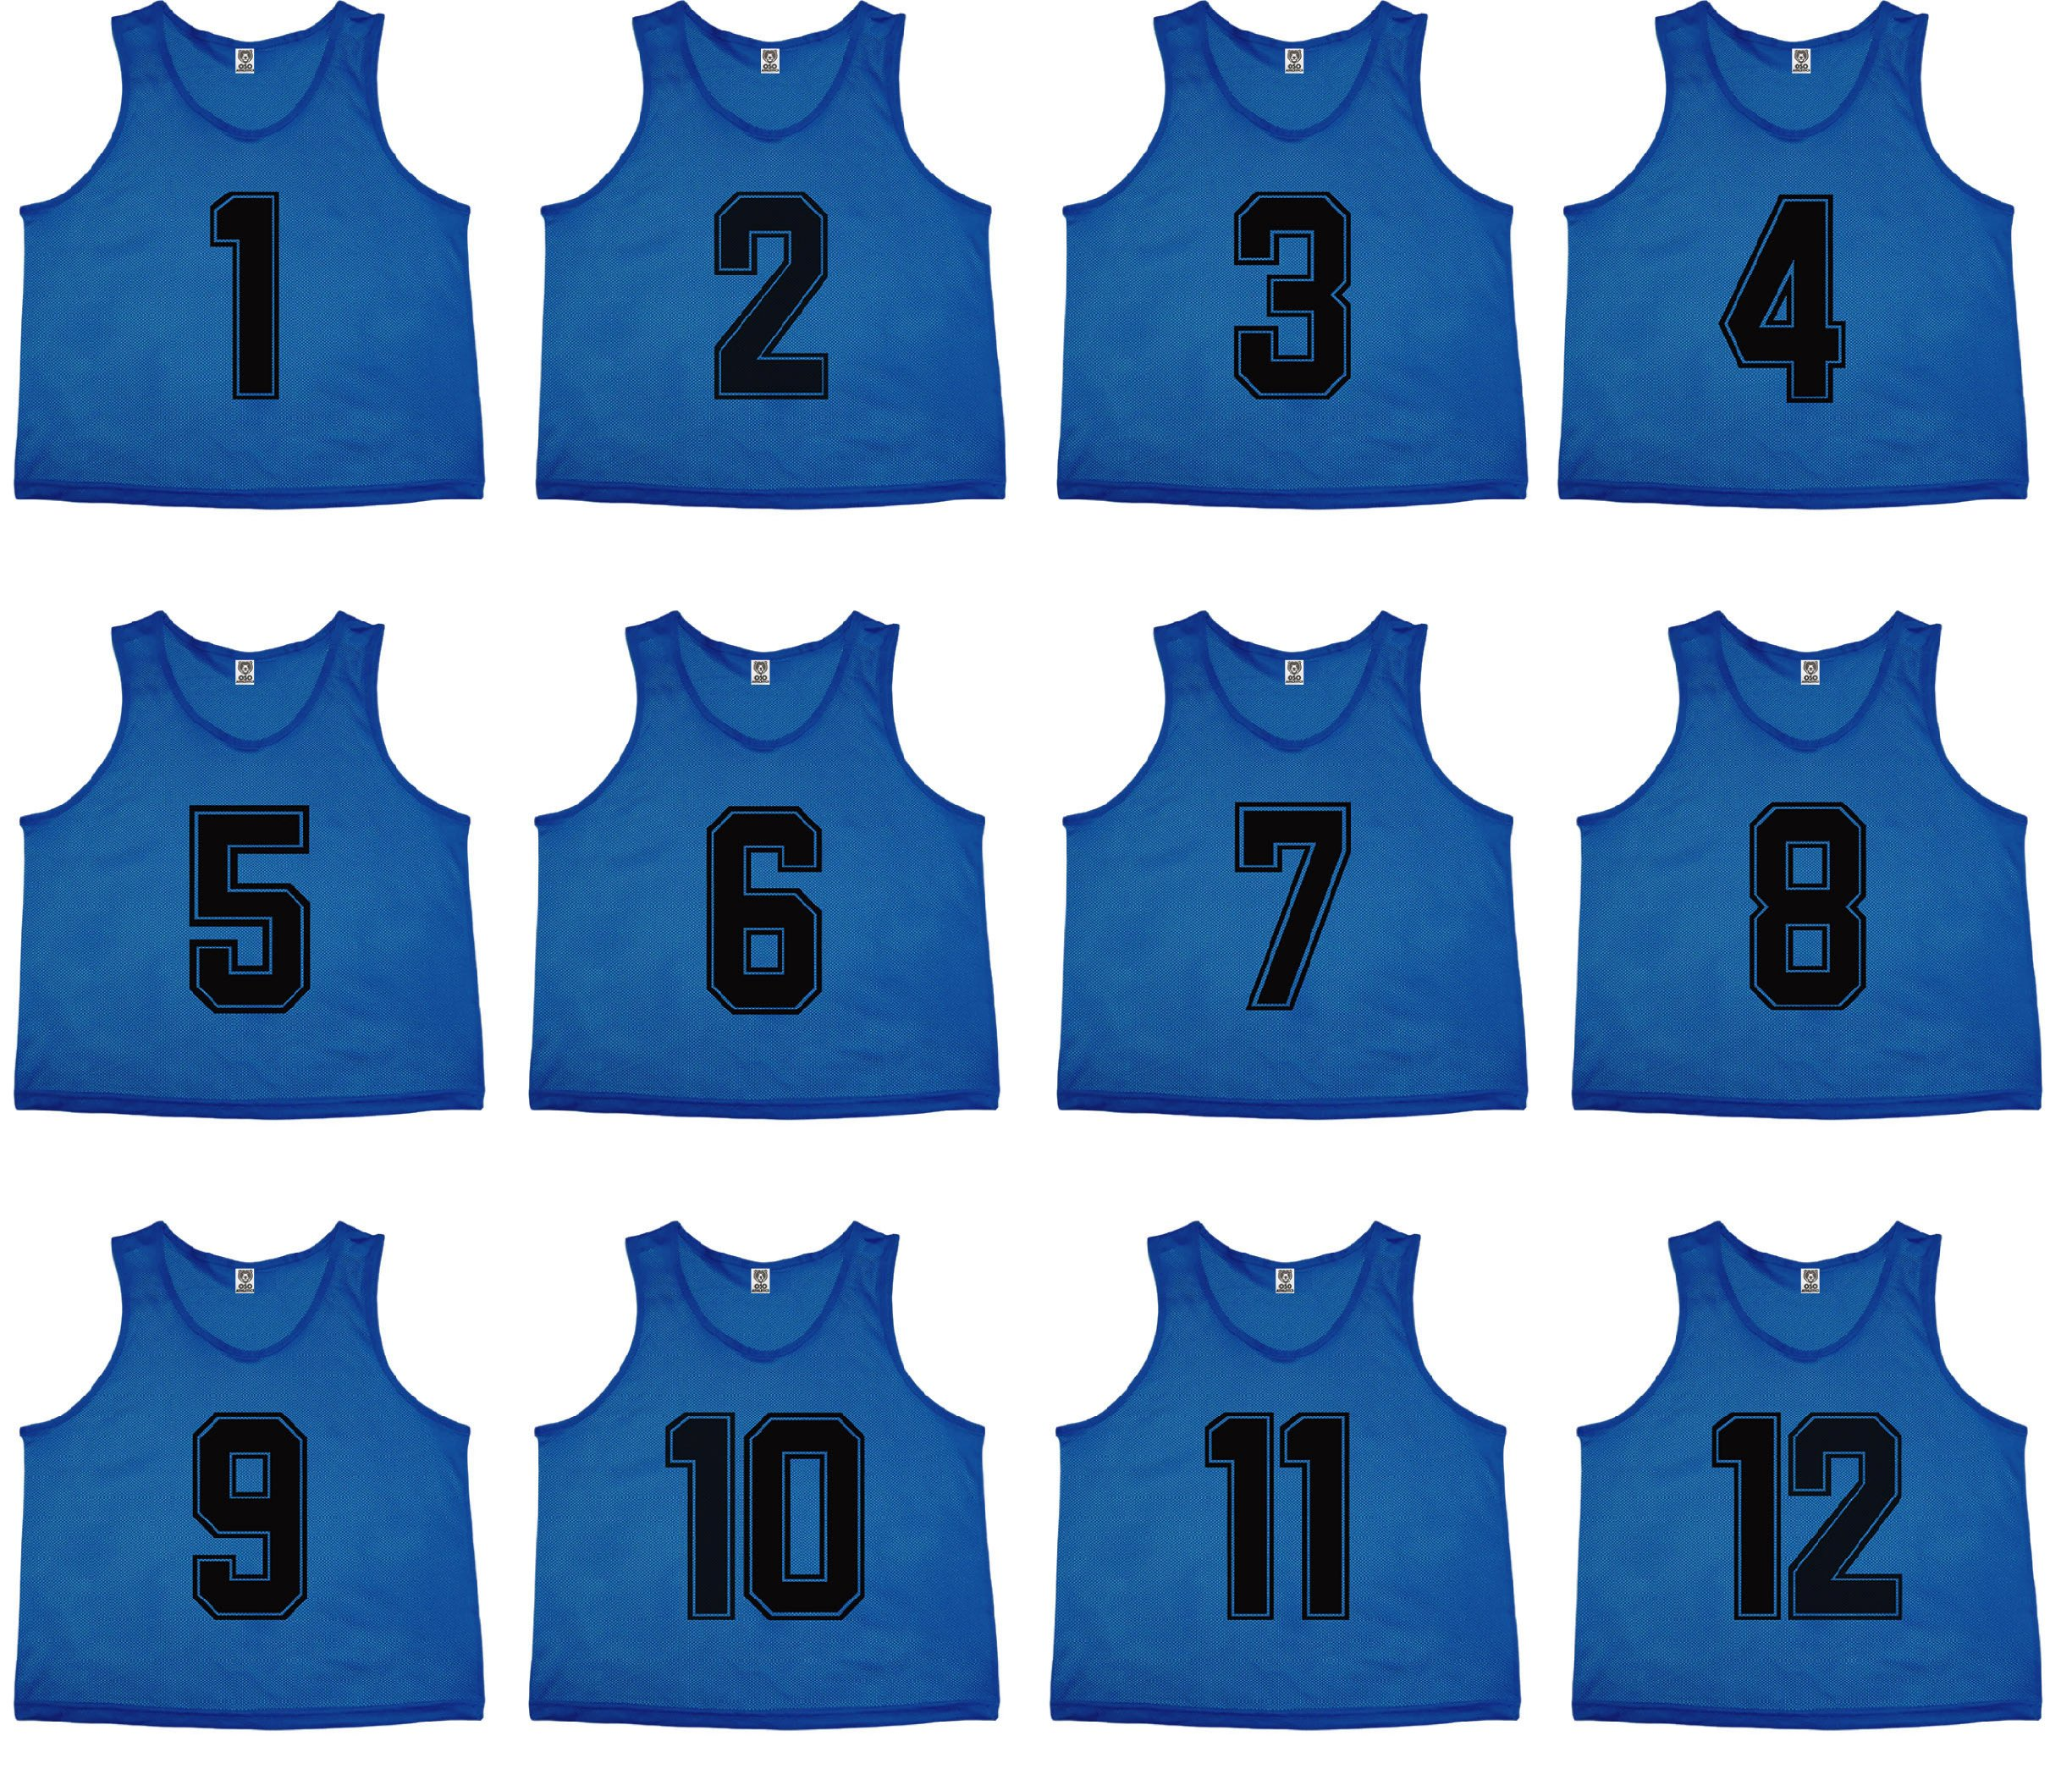 Oso Athletics Sets of 12 (1-12, 13-24) Premium Polyester Mesh Numbered Jerseys, Scrimmage Vests, Pinnies for Children, Youth and Adult Sports Soccer, Basketball (Blue (#1-12), Youth - Small)